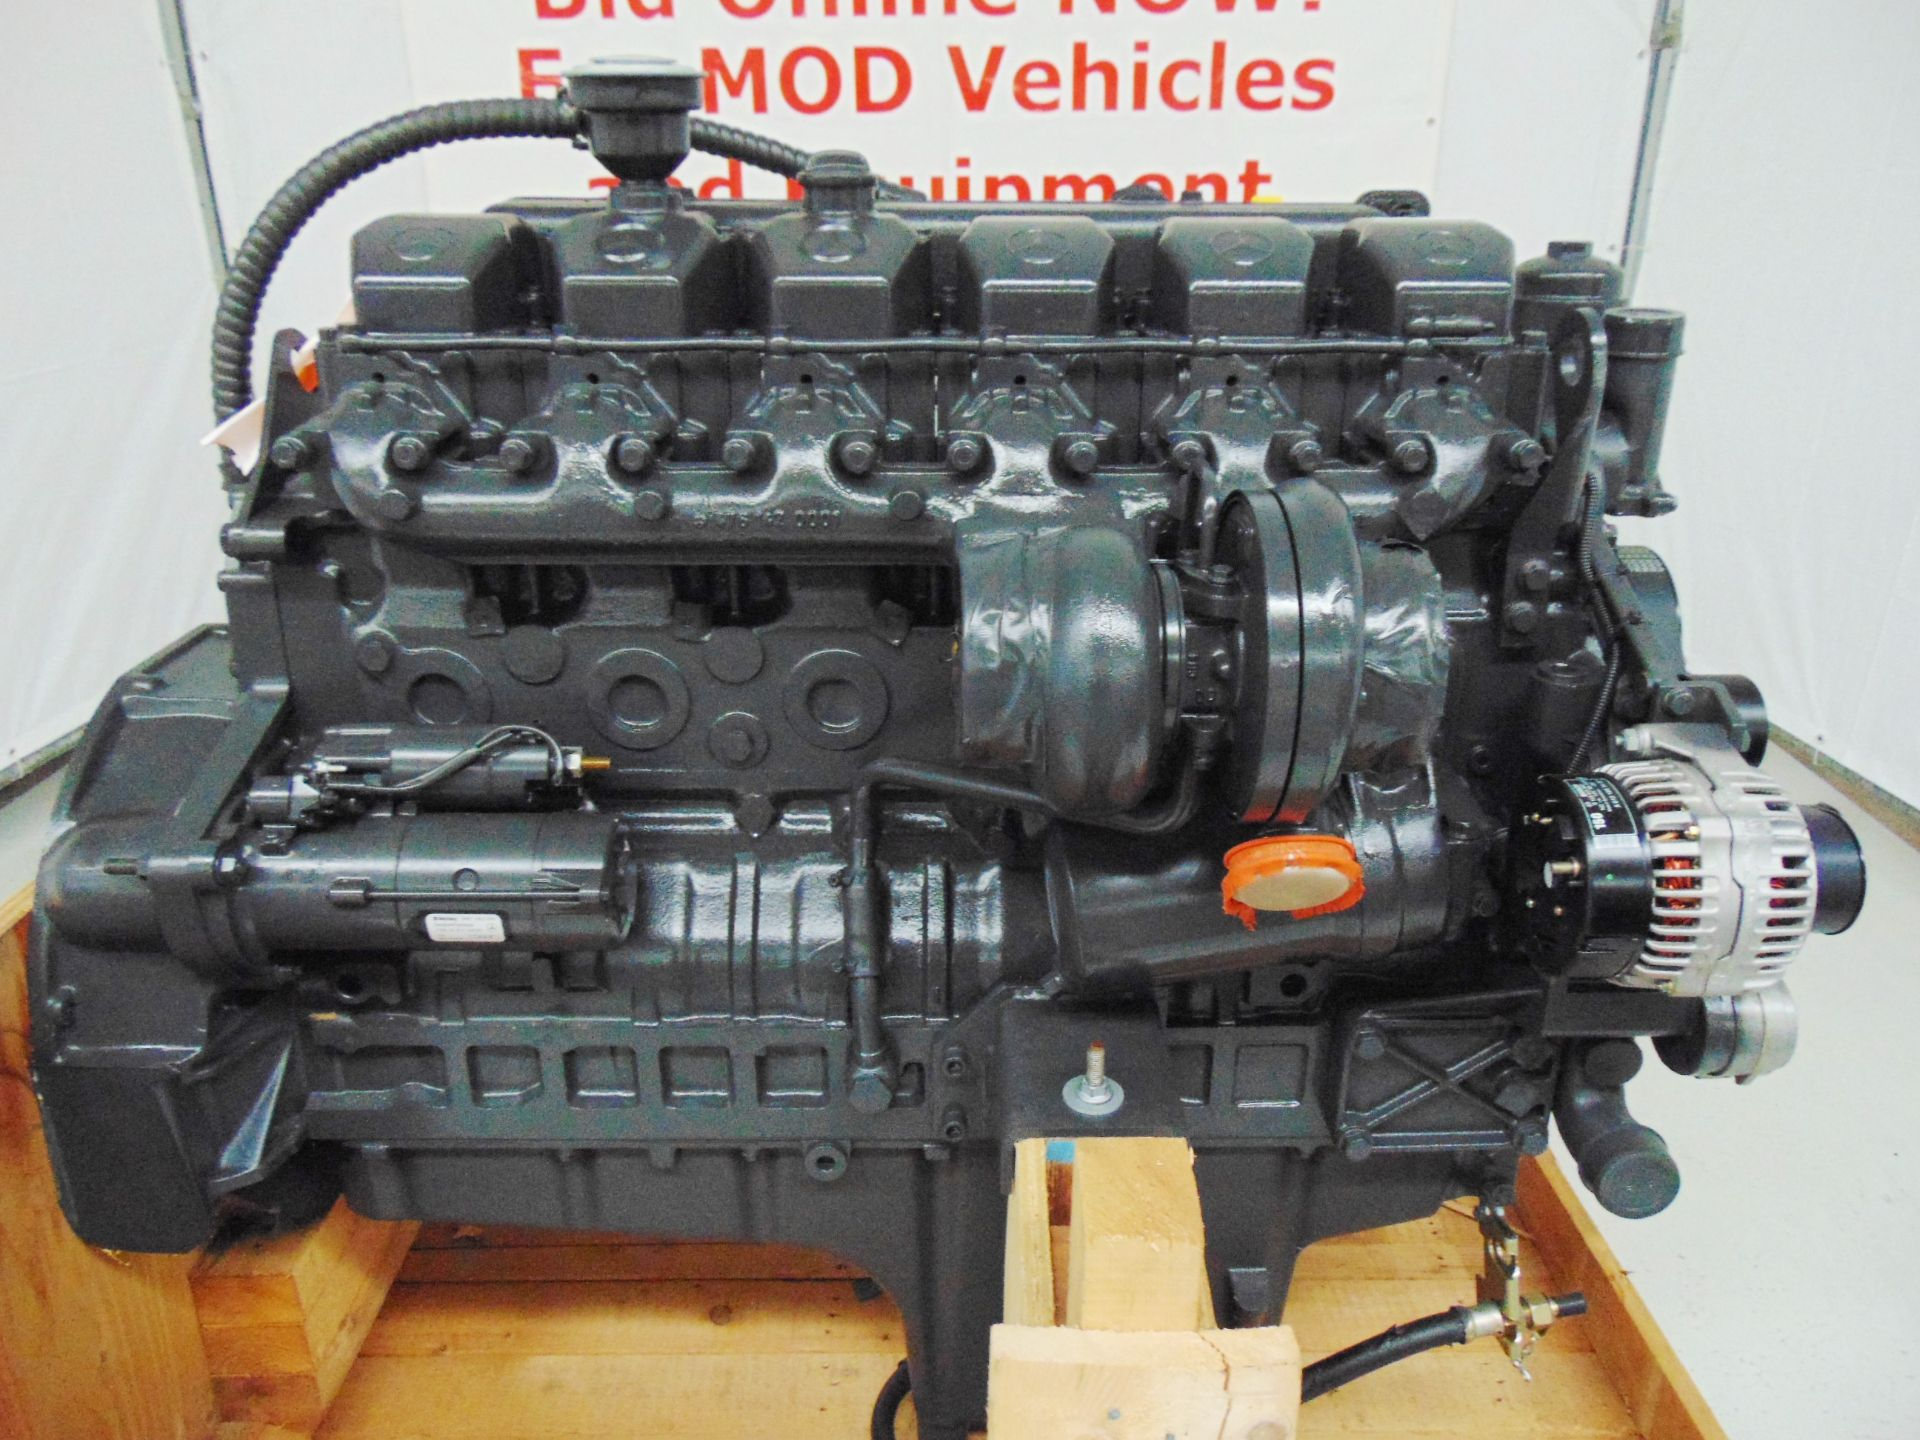 Lot 19 - Factory Reconditioned Mercedes-Benz OM457LA Turbo Diesel Engine